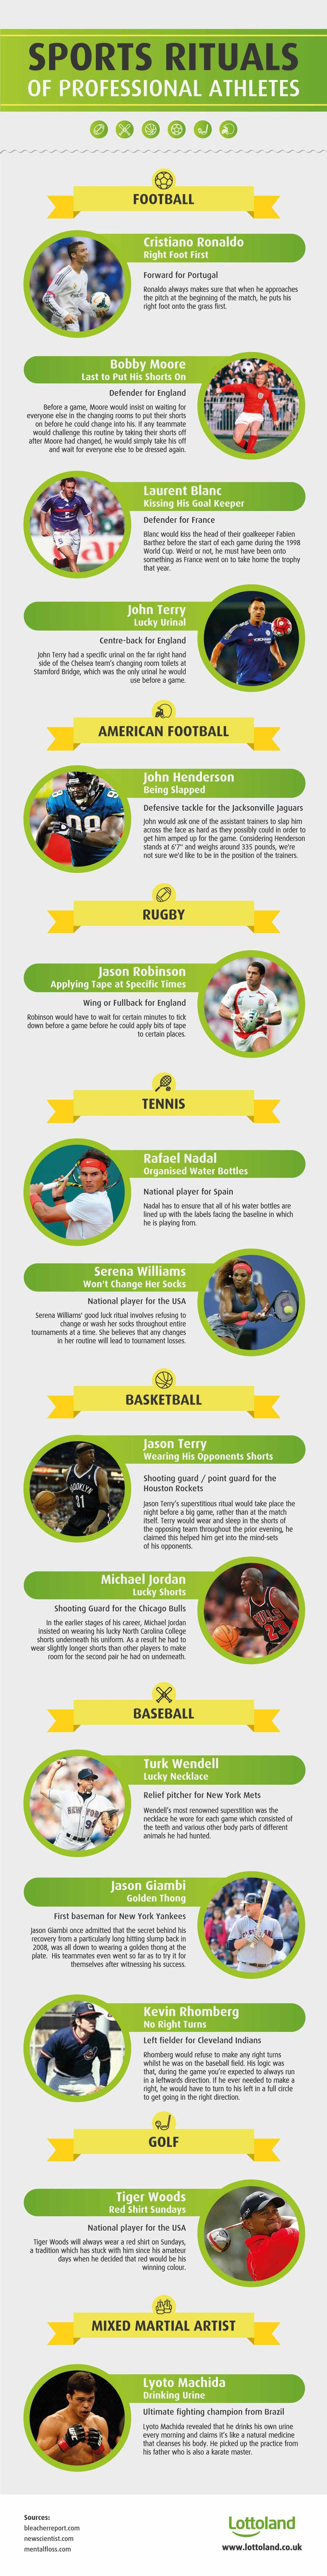 The Most Bizarre Sports Rituals of Professional Athletes #Infographic